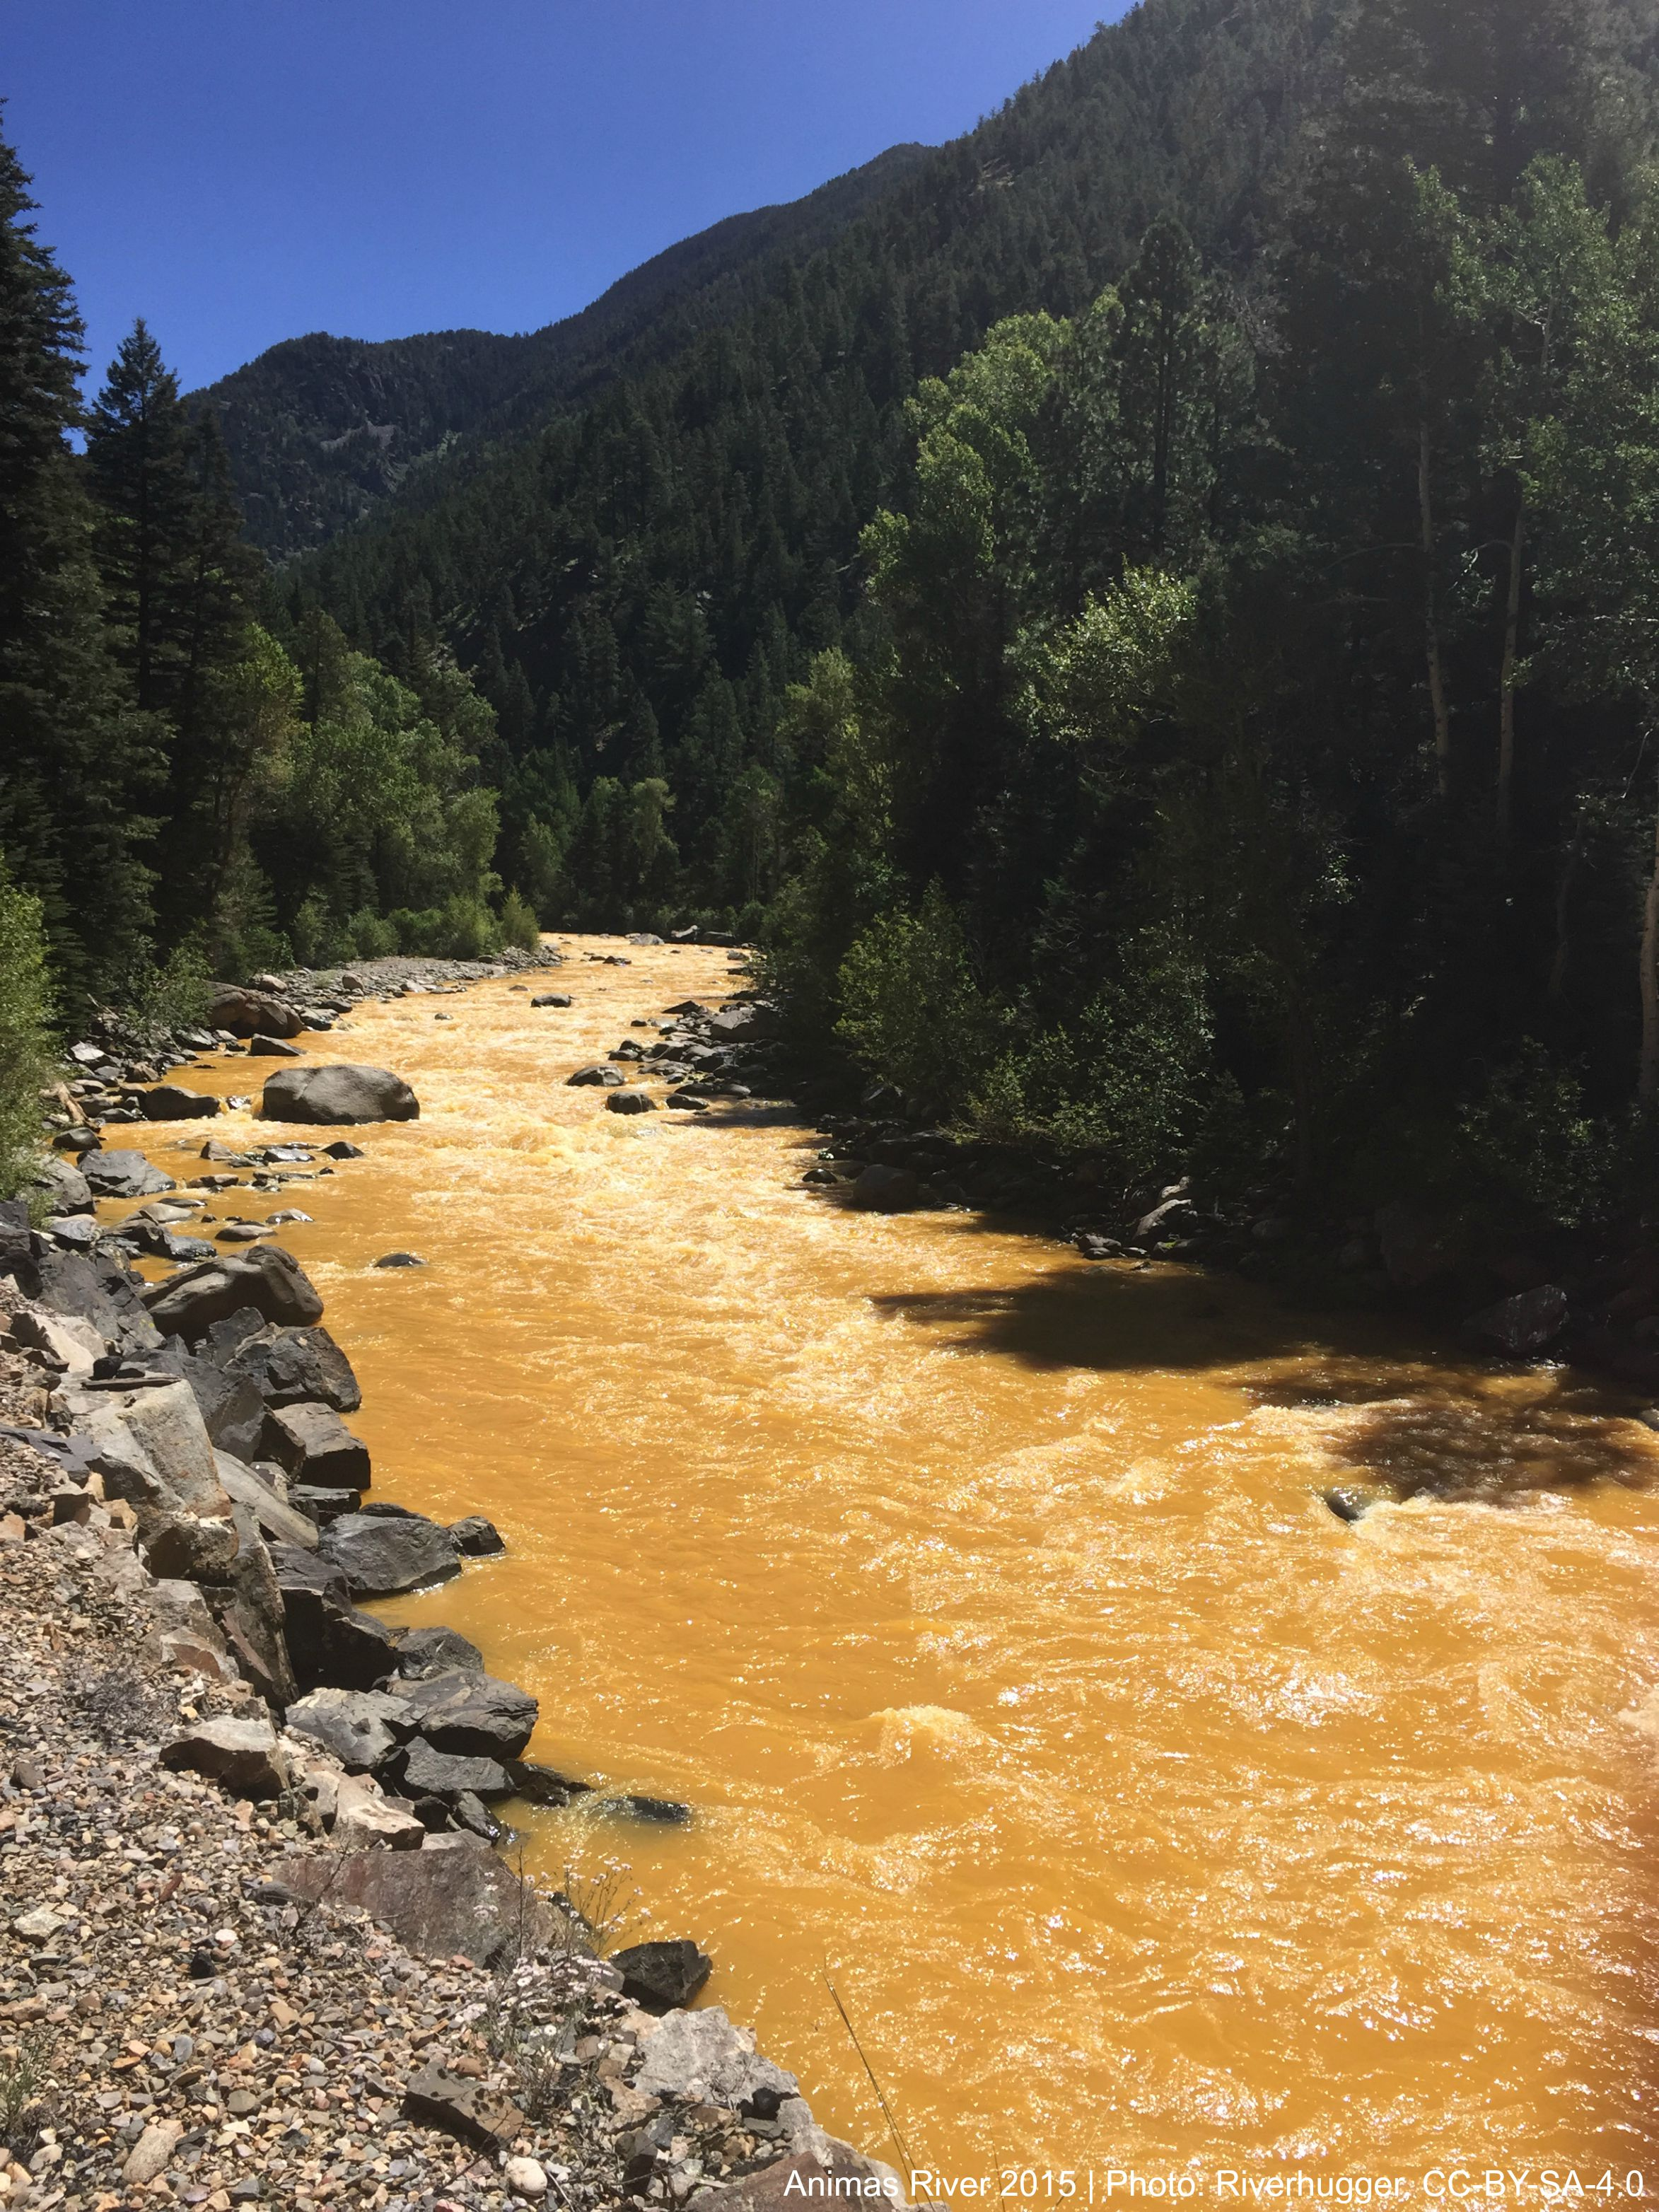 The Animas River between Silverton and Durango in Colorado, USA, within 24 hours of the 2015 Gold King Mine waste water spill.   Photo By RiverHugger,  CC BY-SA 4.0